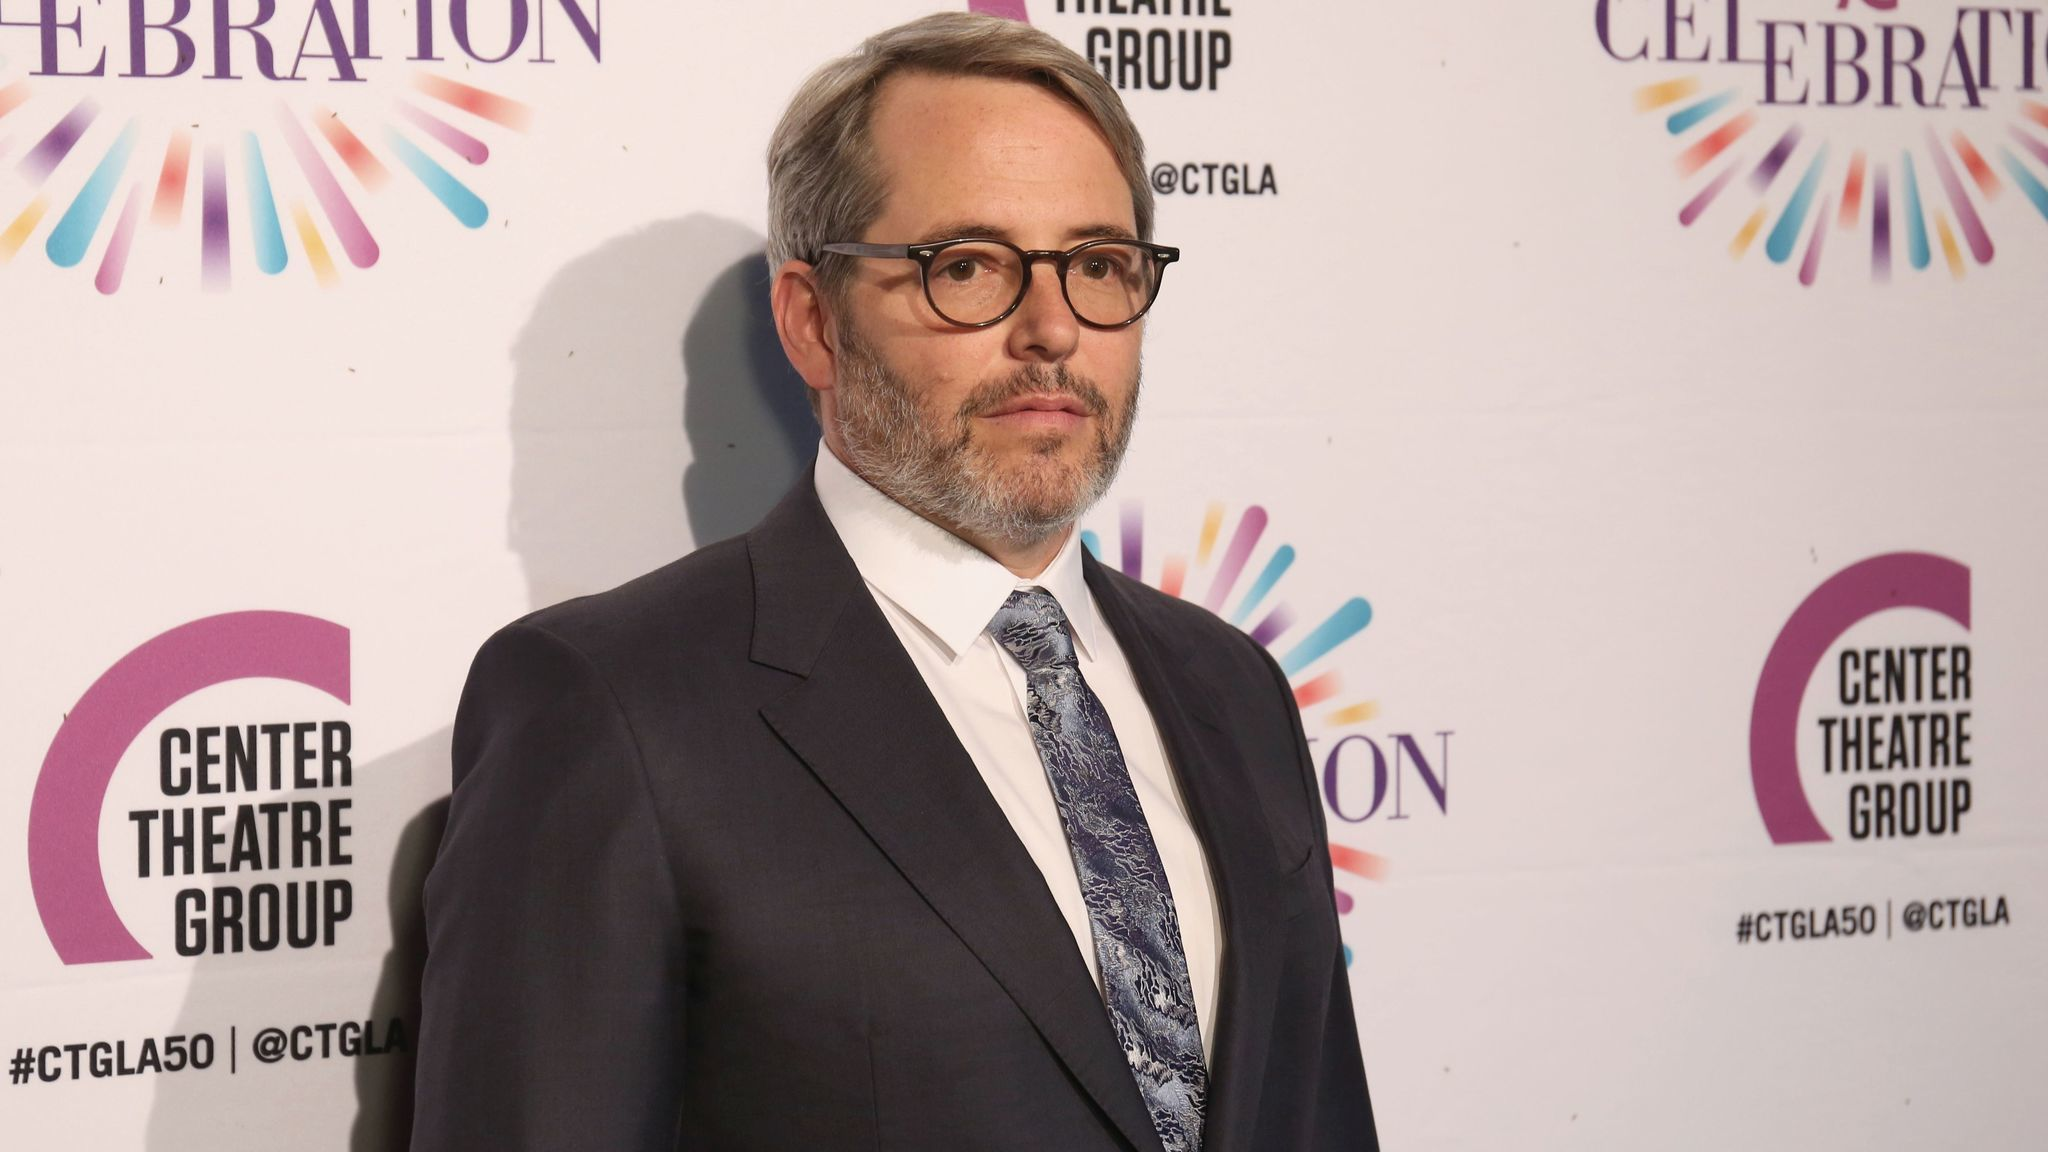 Matthew Broderick arrives at the Center Theatre Group's 50th anniversary event on May 20 in Los Angeles.